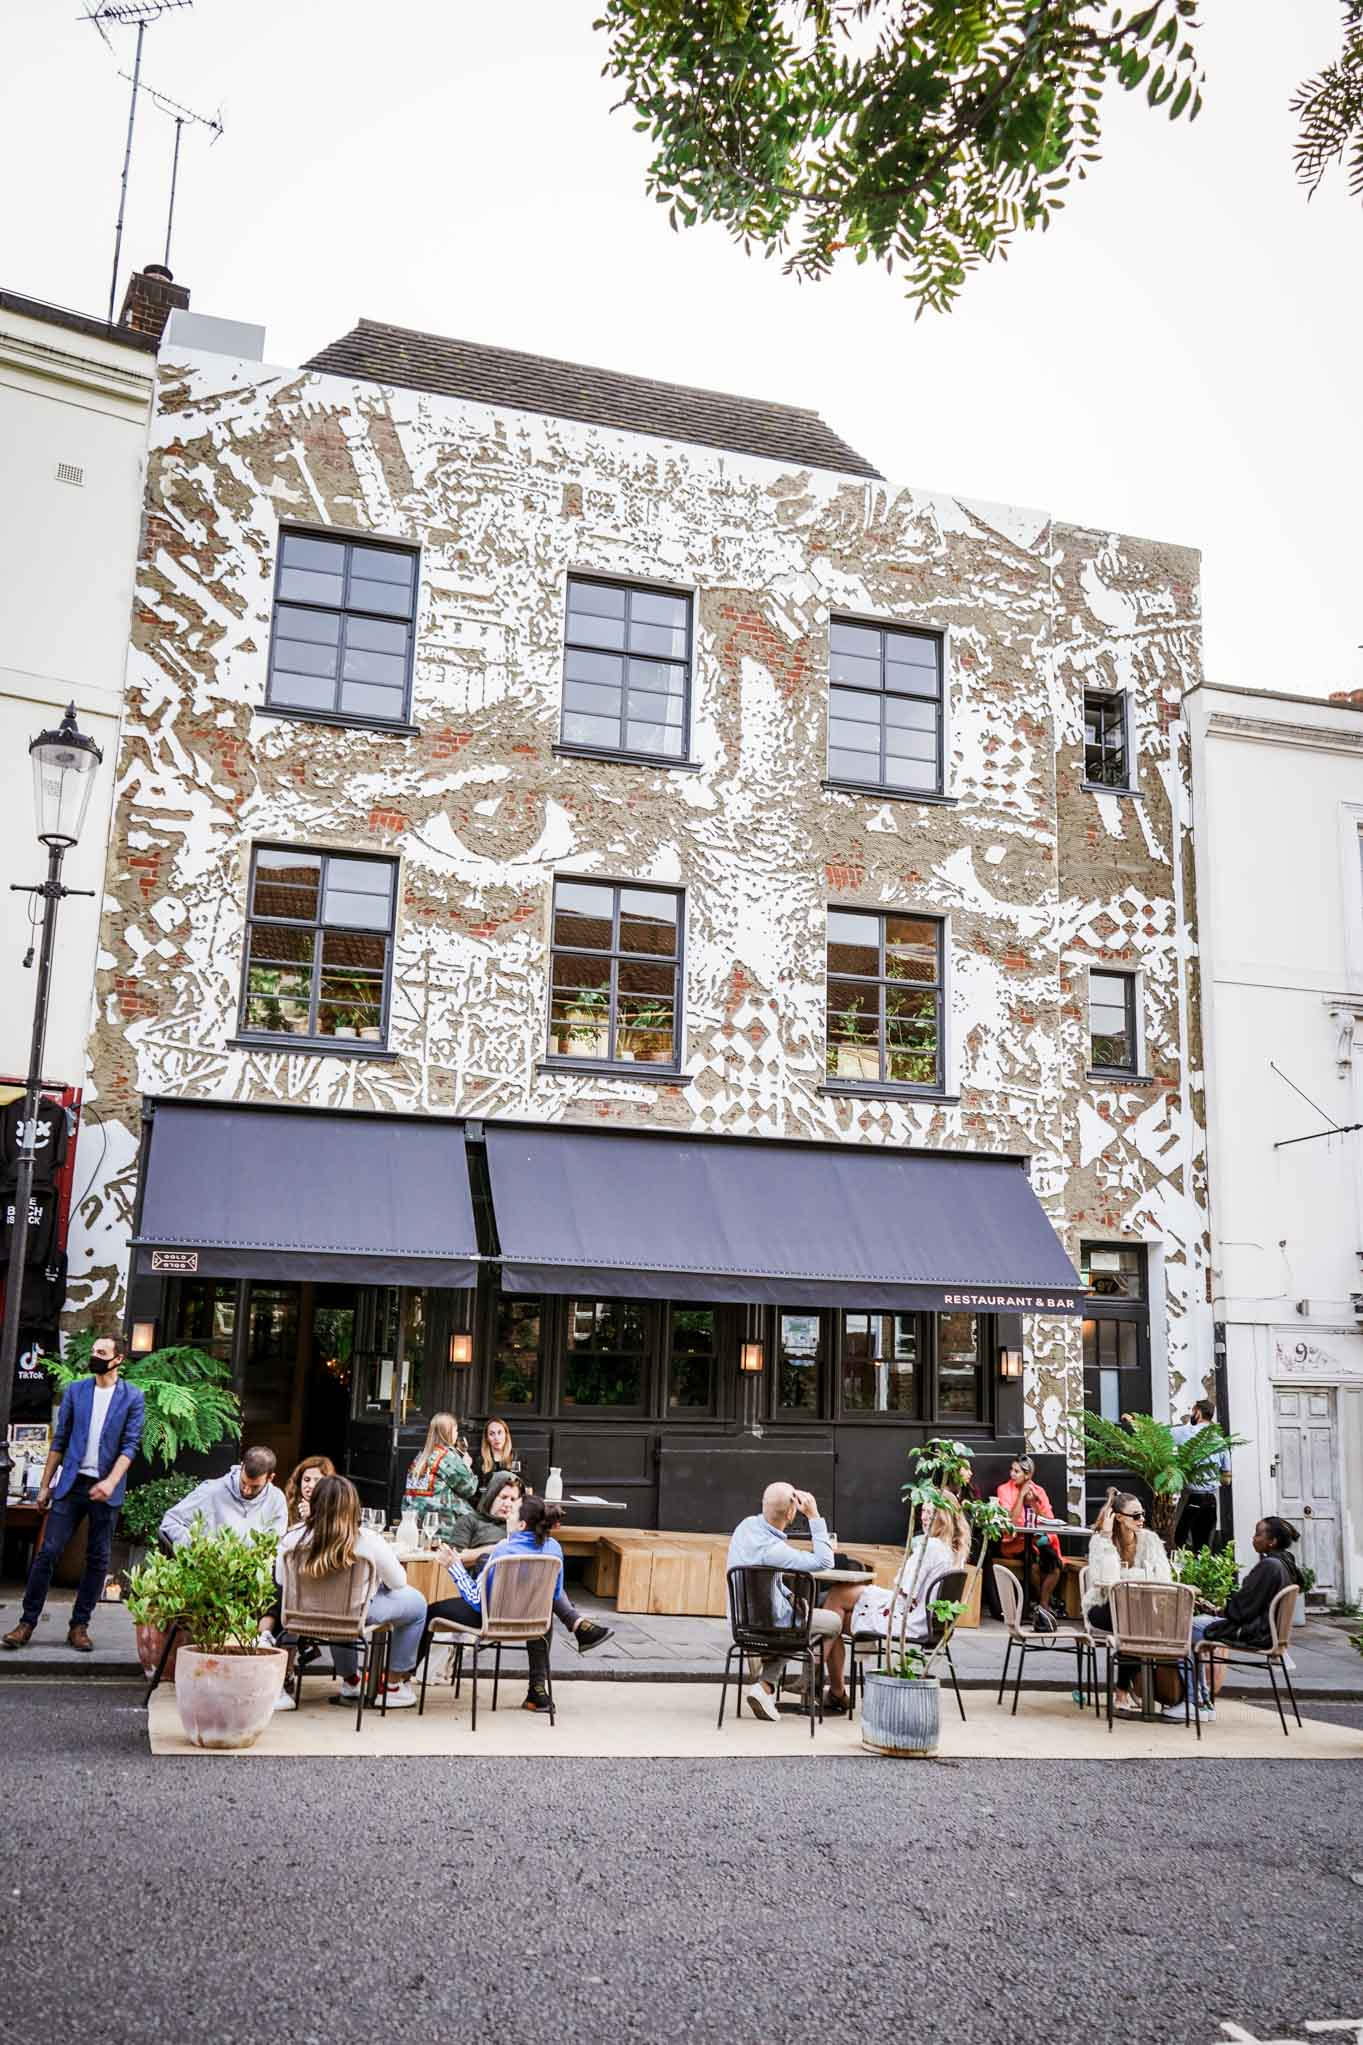 notting hill sightseeing